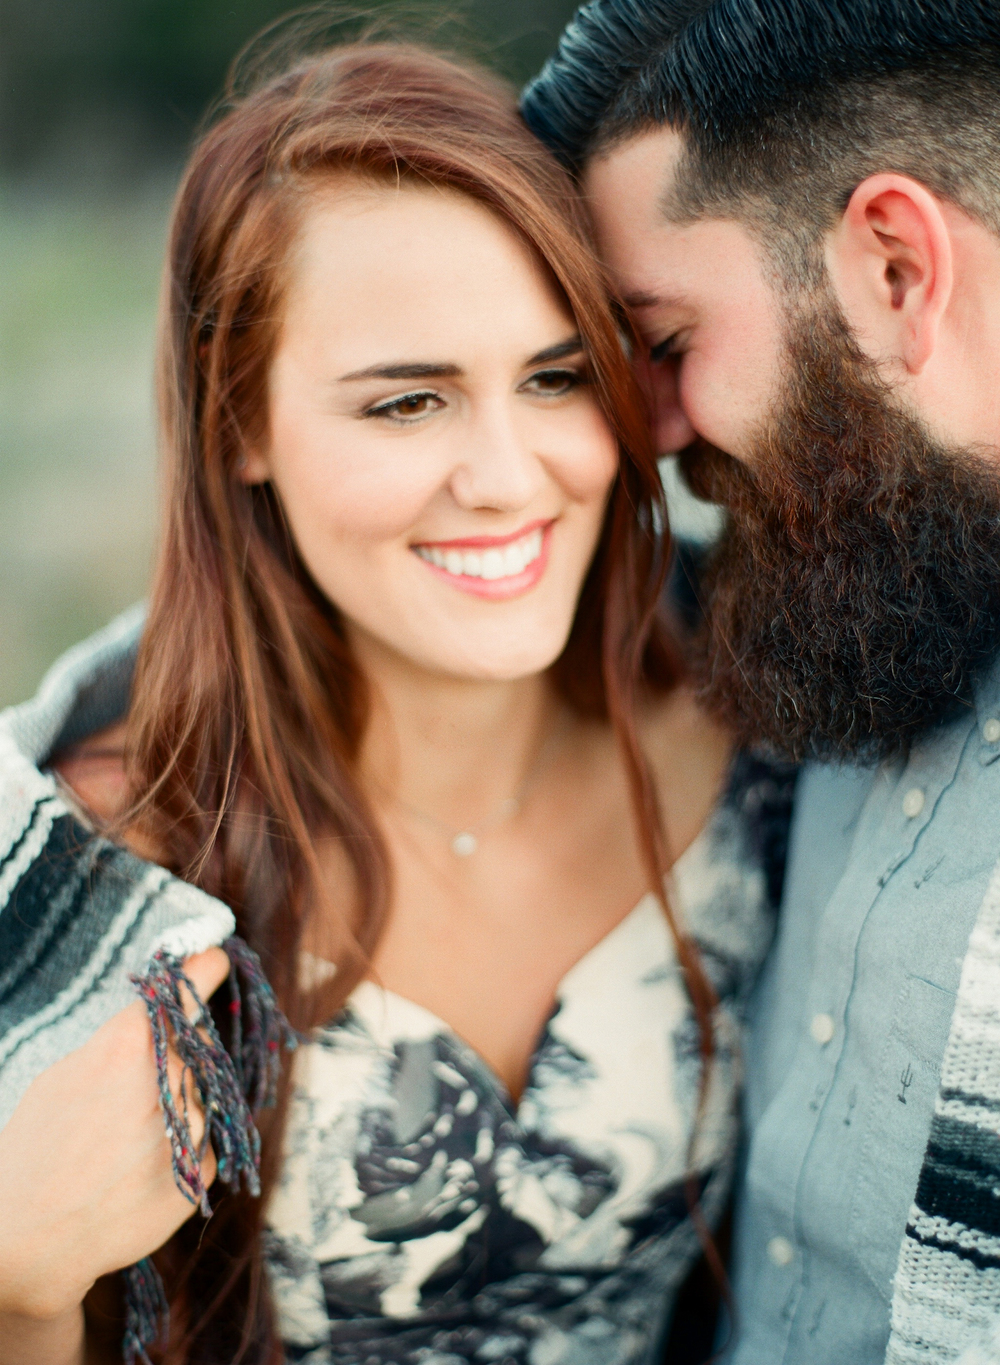 Austin-Texas-Film-Photographer-Engagement-Session-34.jpg